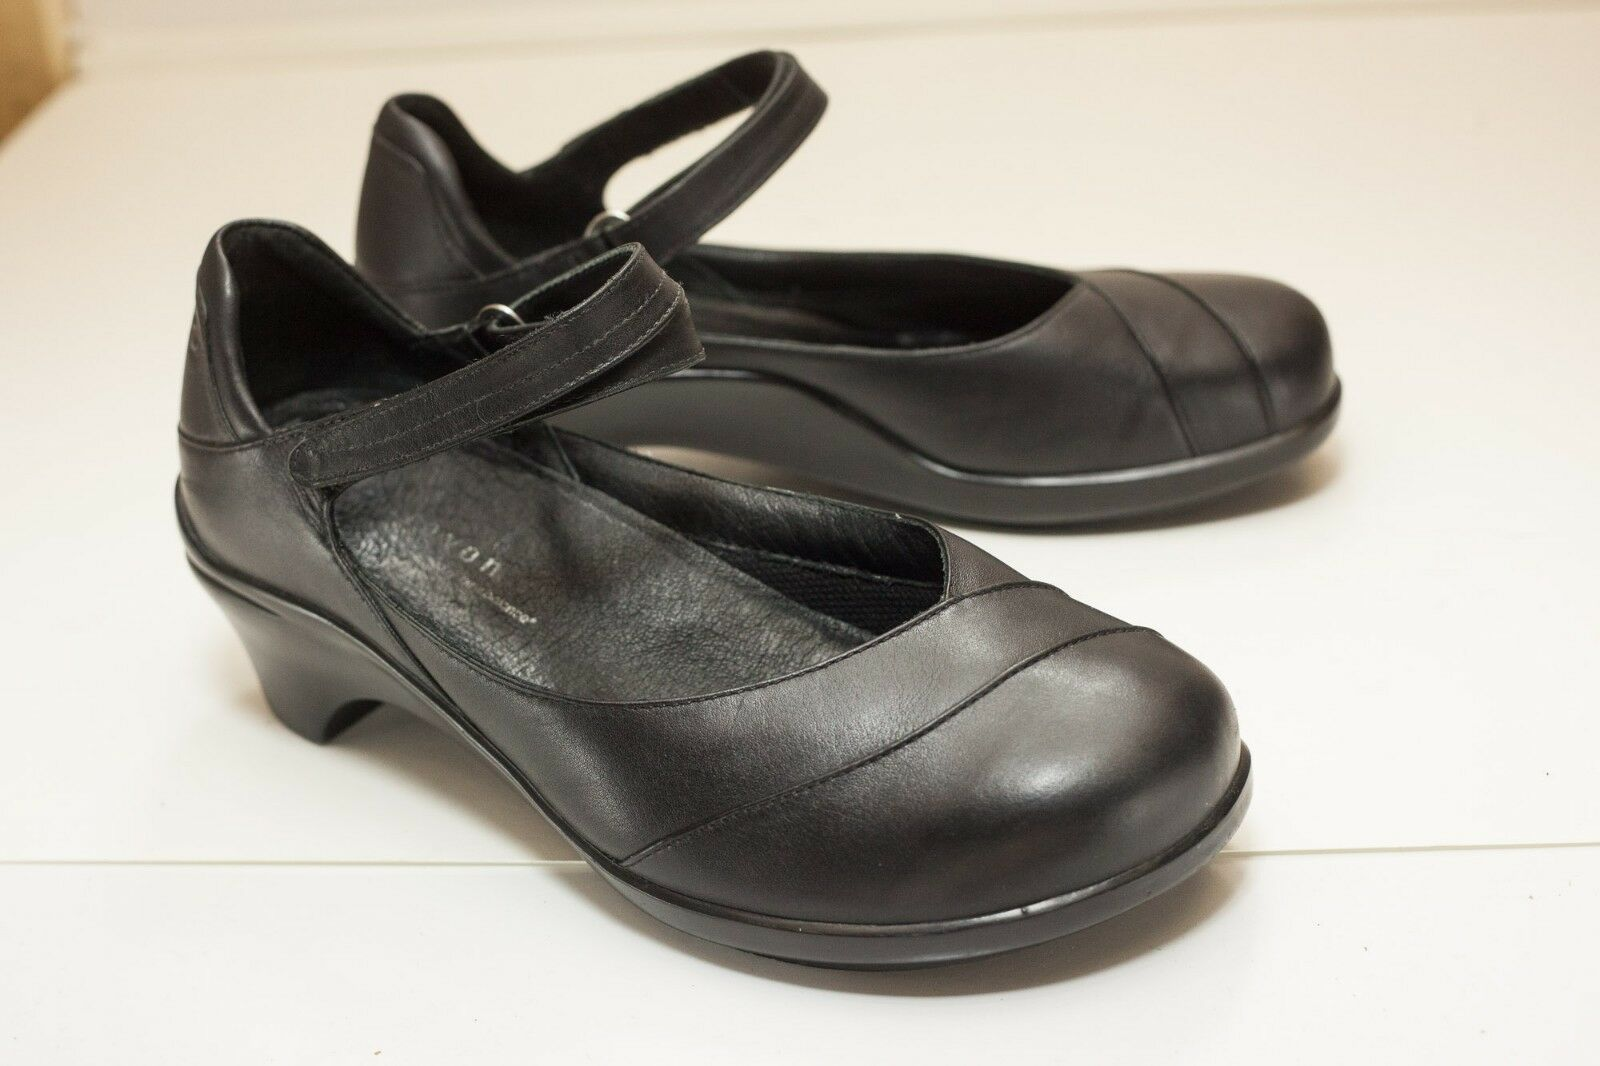 Aravon Aravon Aravon Maya US 7.5 D Black Mary Jane Women's 298ace